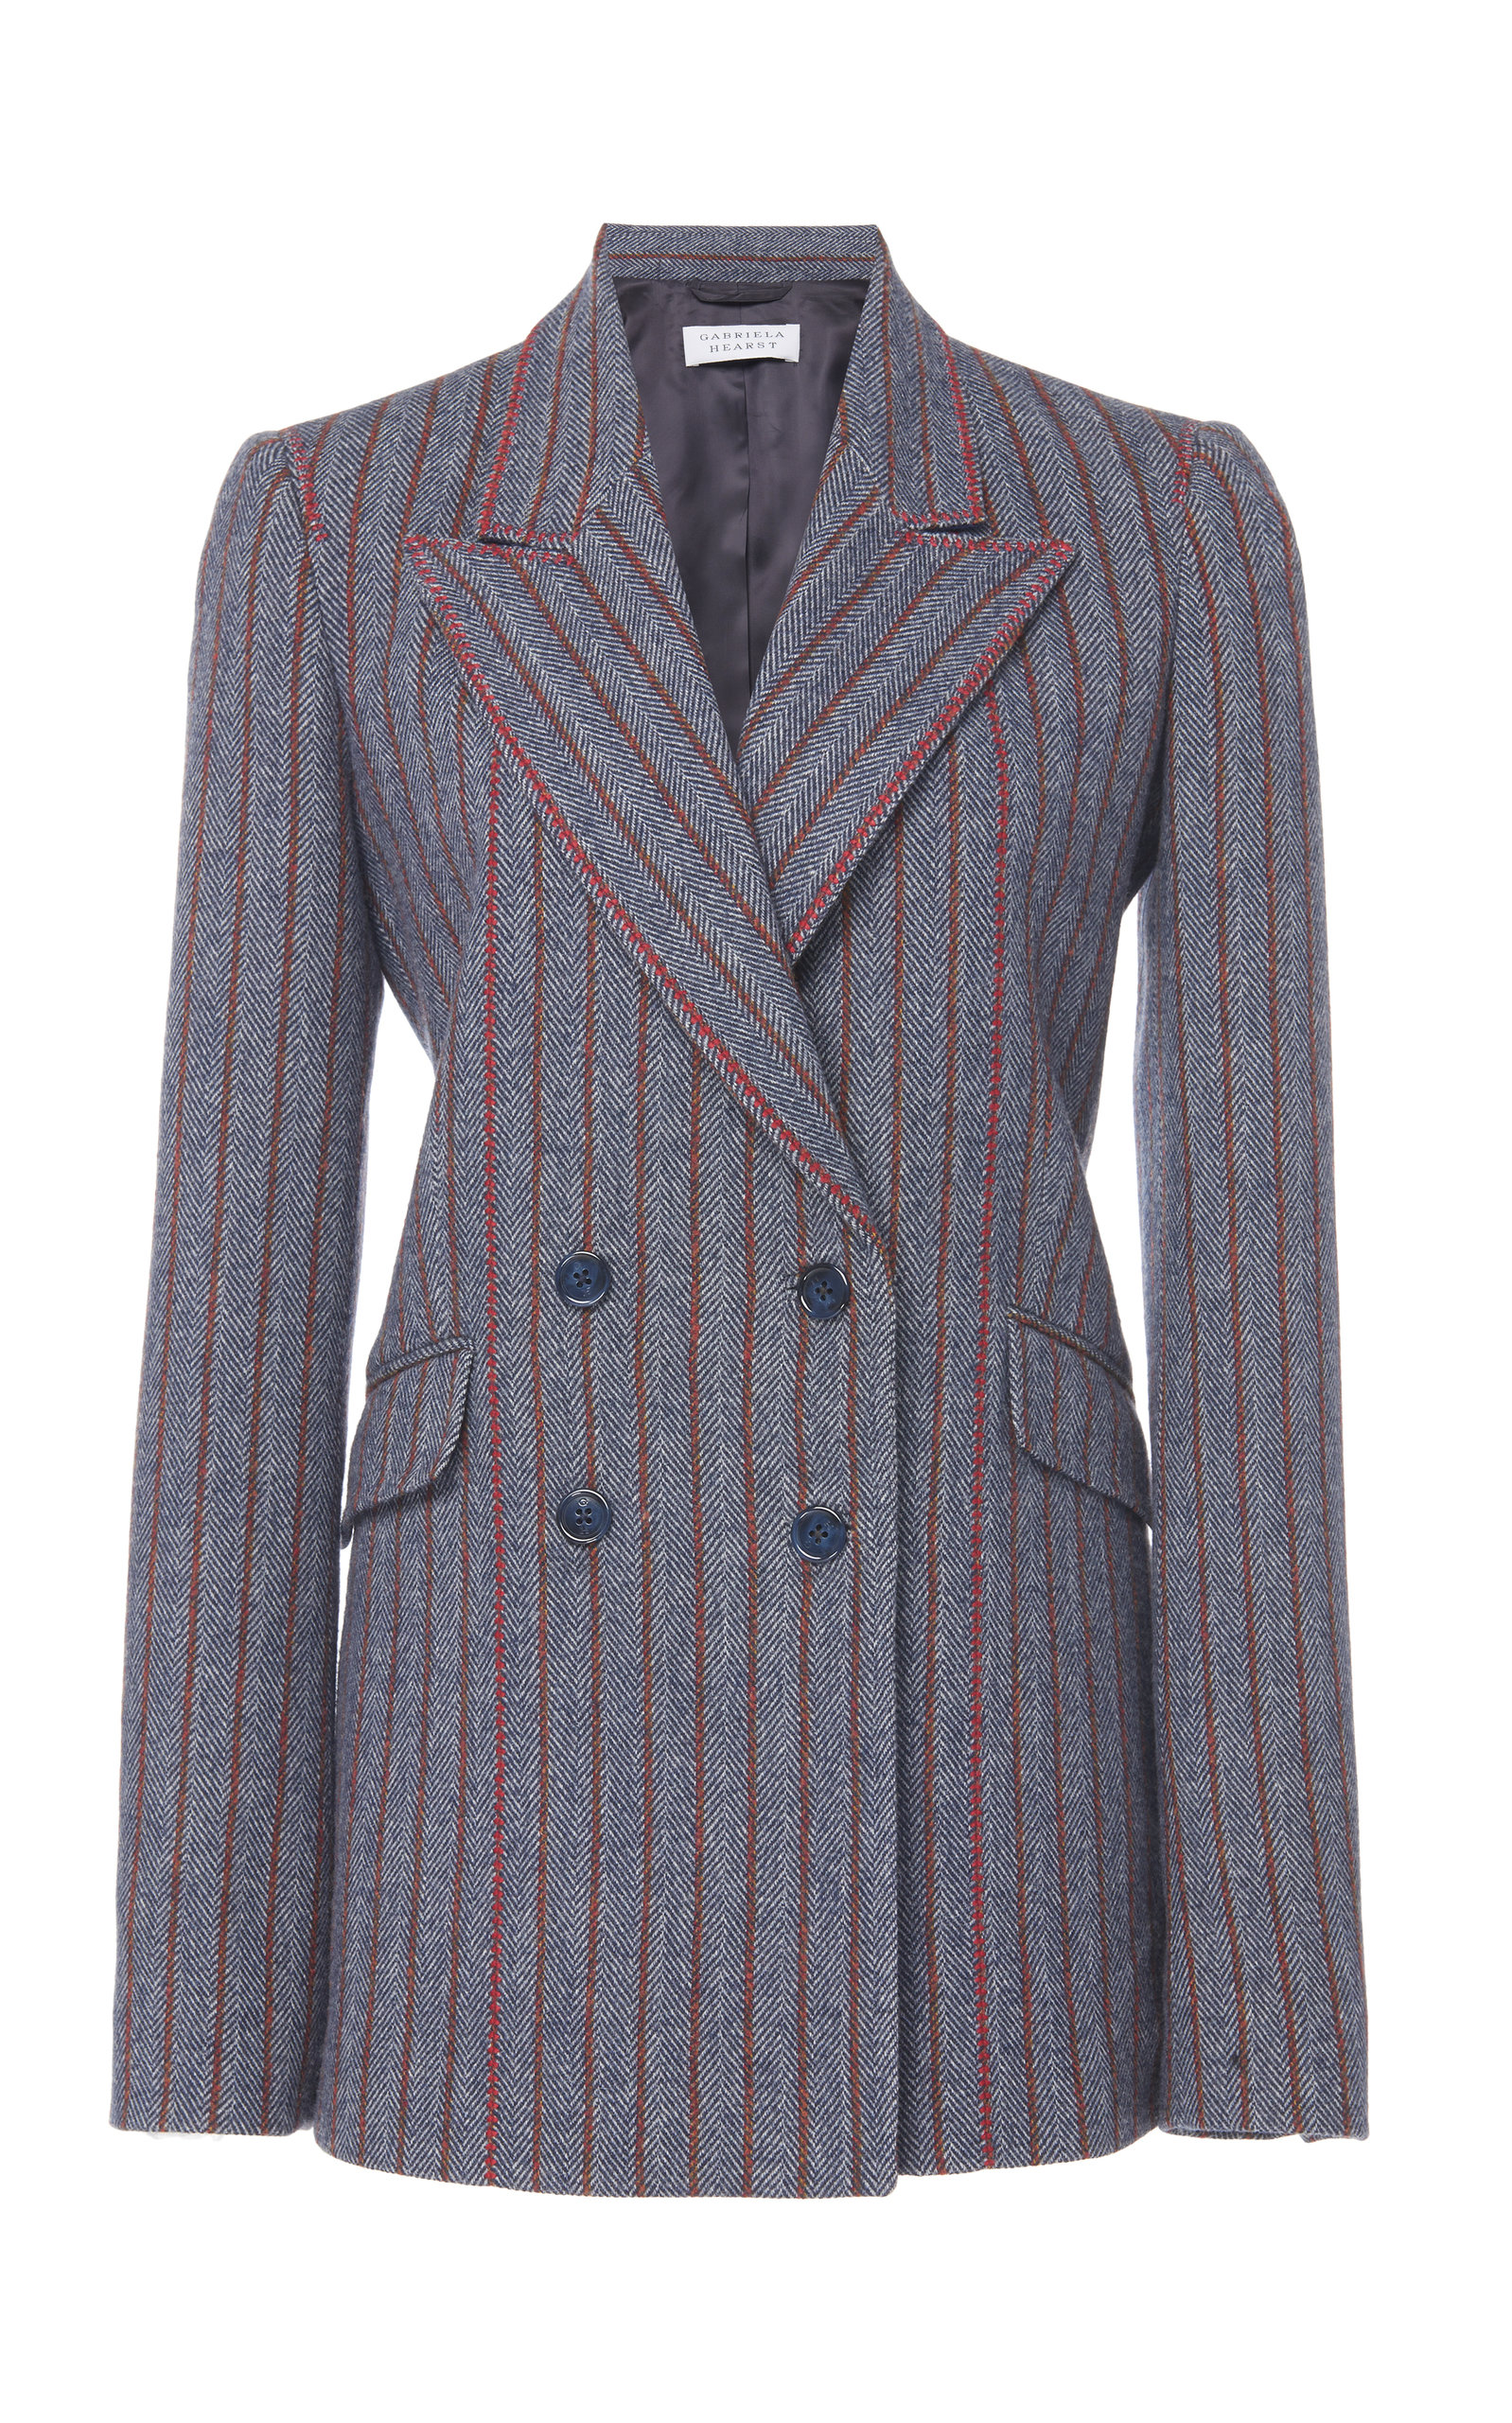 Gabriela Hearst Blazers Angela Herringbone Pinstripe Wool And Cashmere Blend Blazer